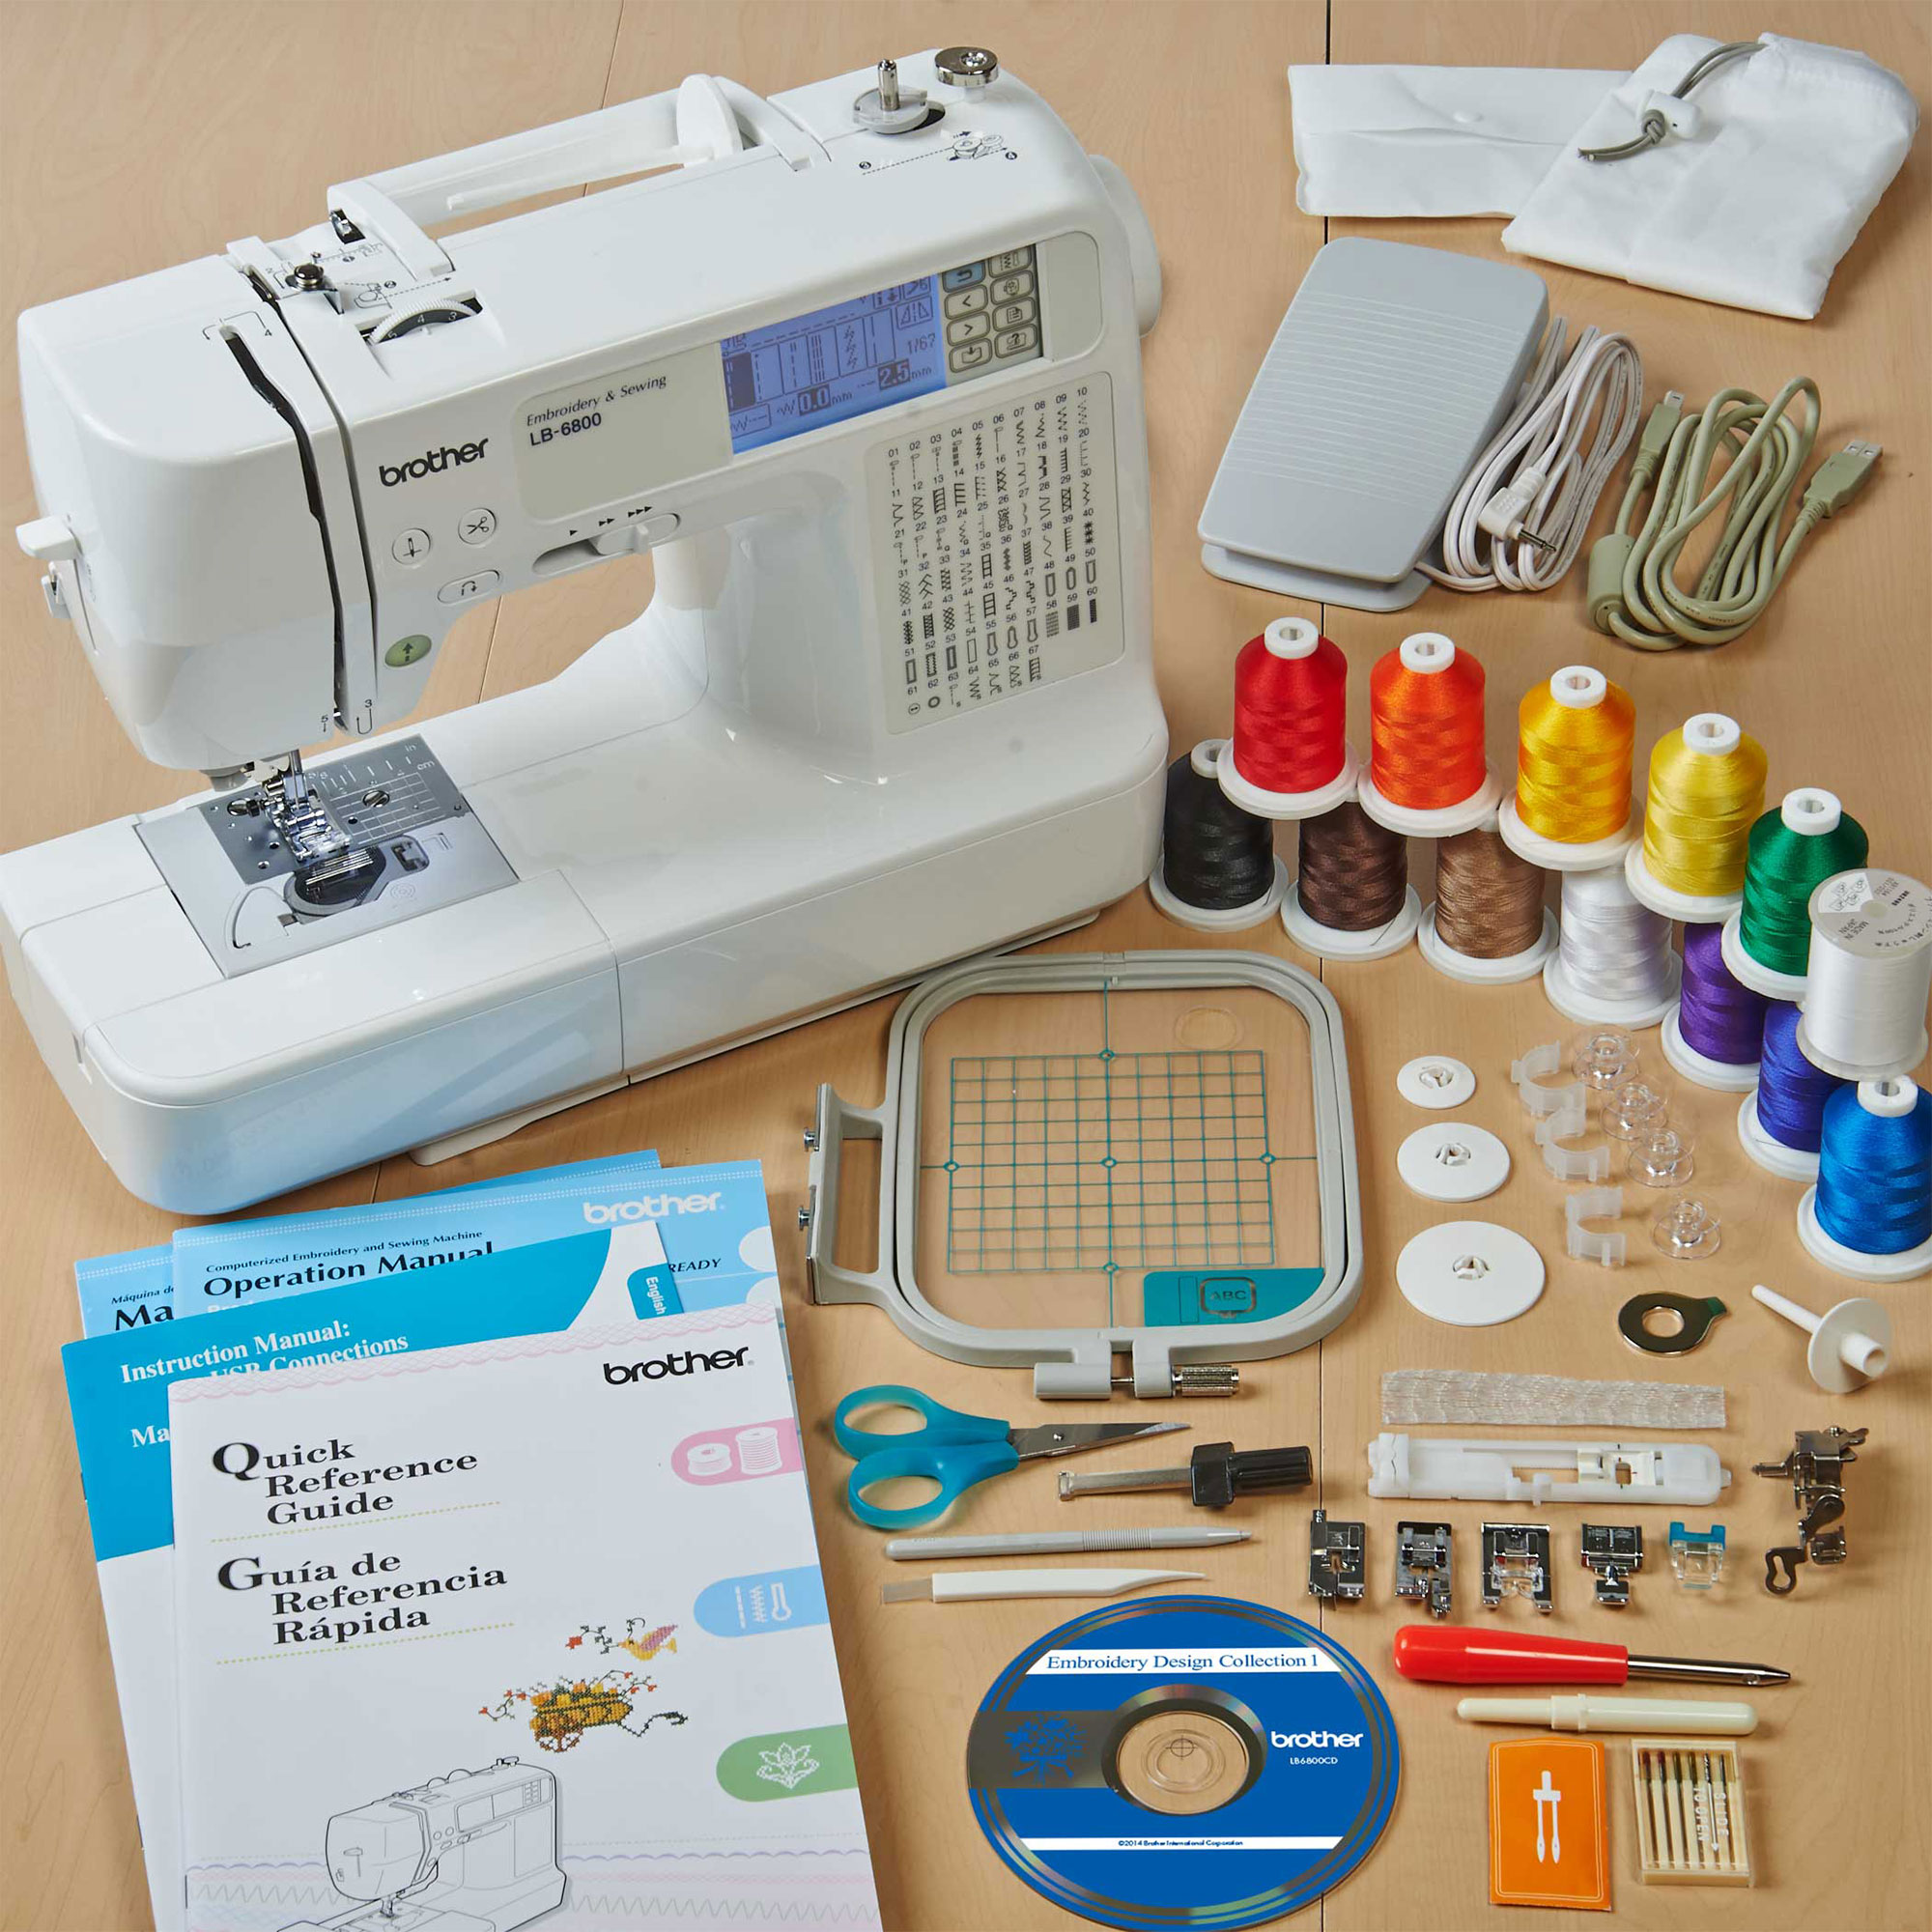 brothers sewing and embroidery machine